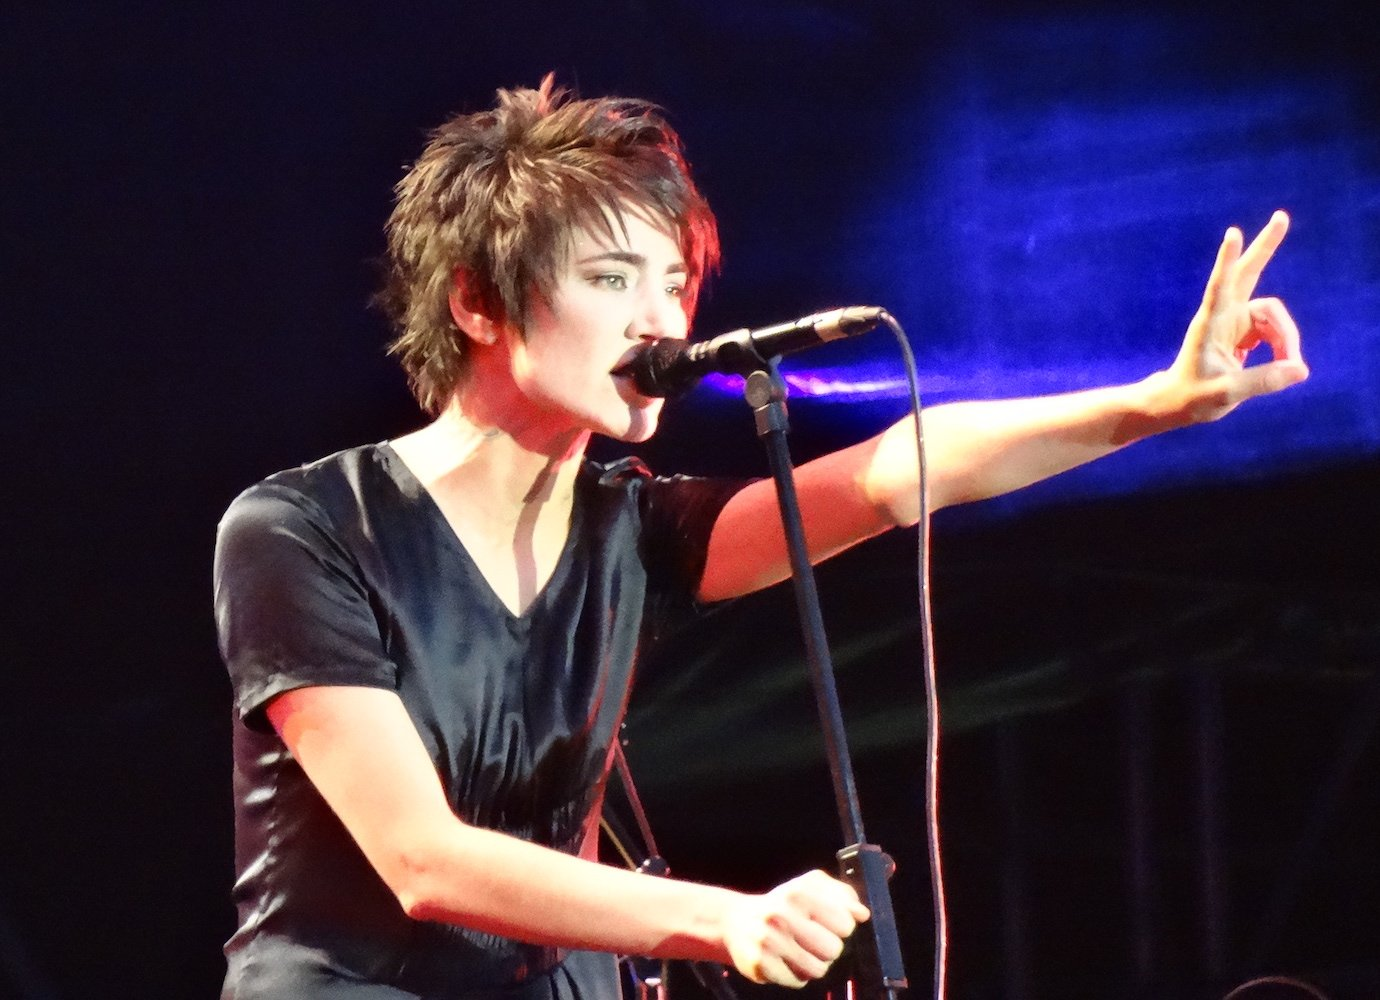 5 videos from Russian rock icon Zemfira you need to watch